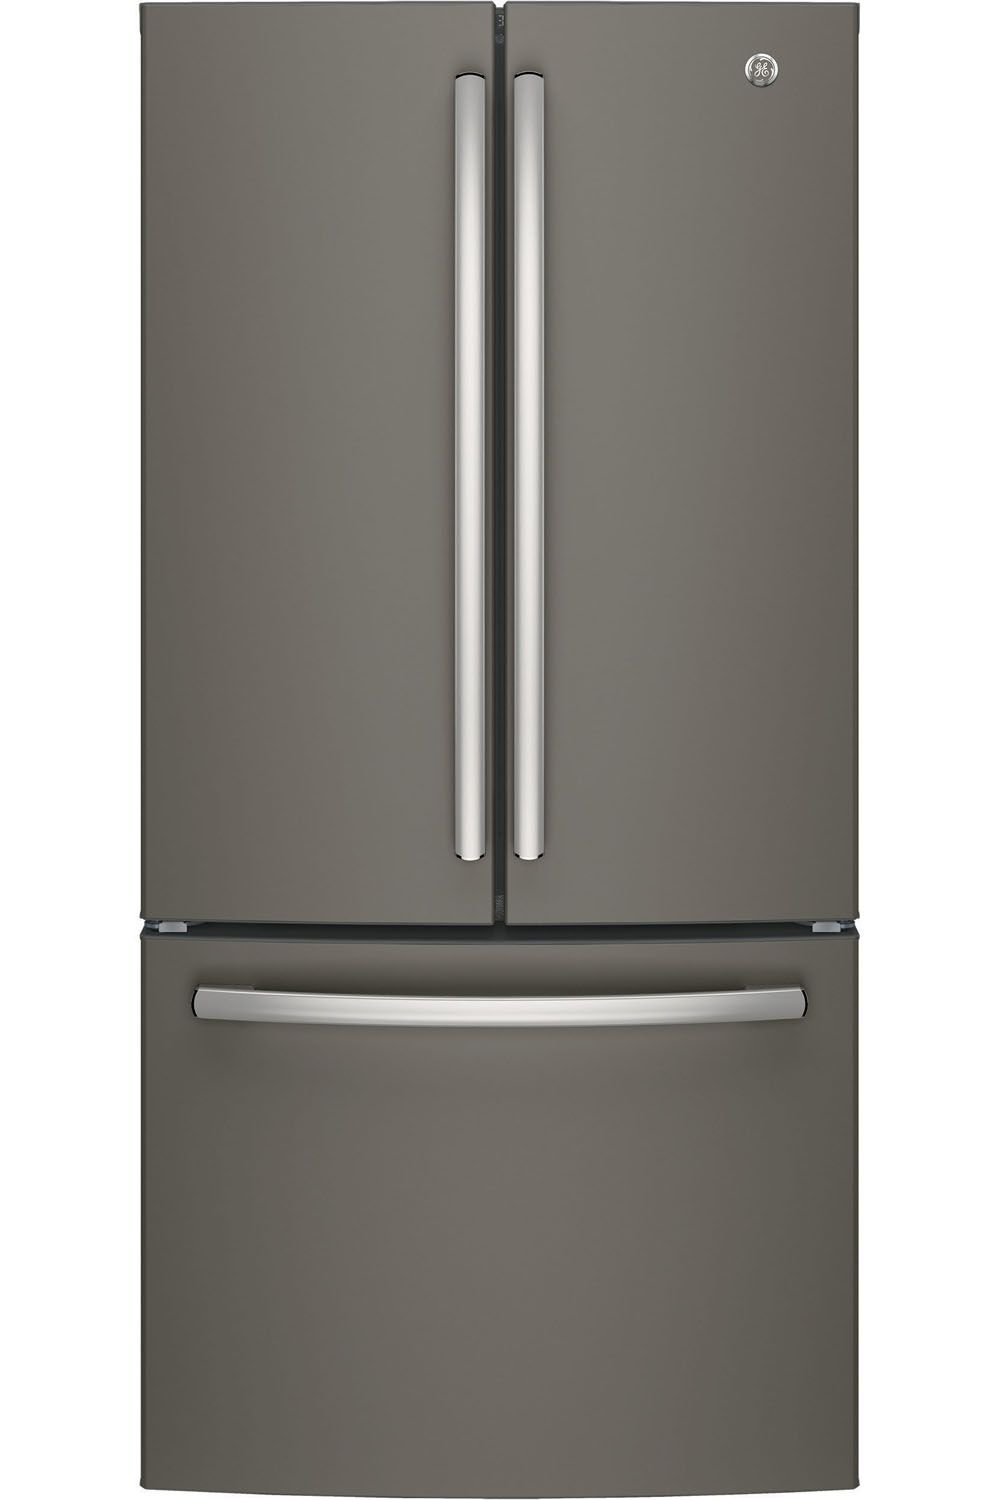 Ge slate french door refrigerator gne25jmkes ge gne25jmkes french door refrigerators rubansaba